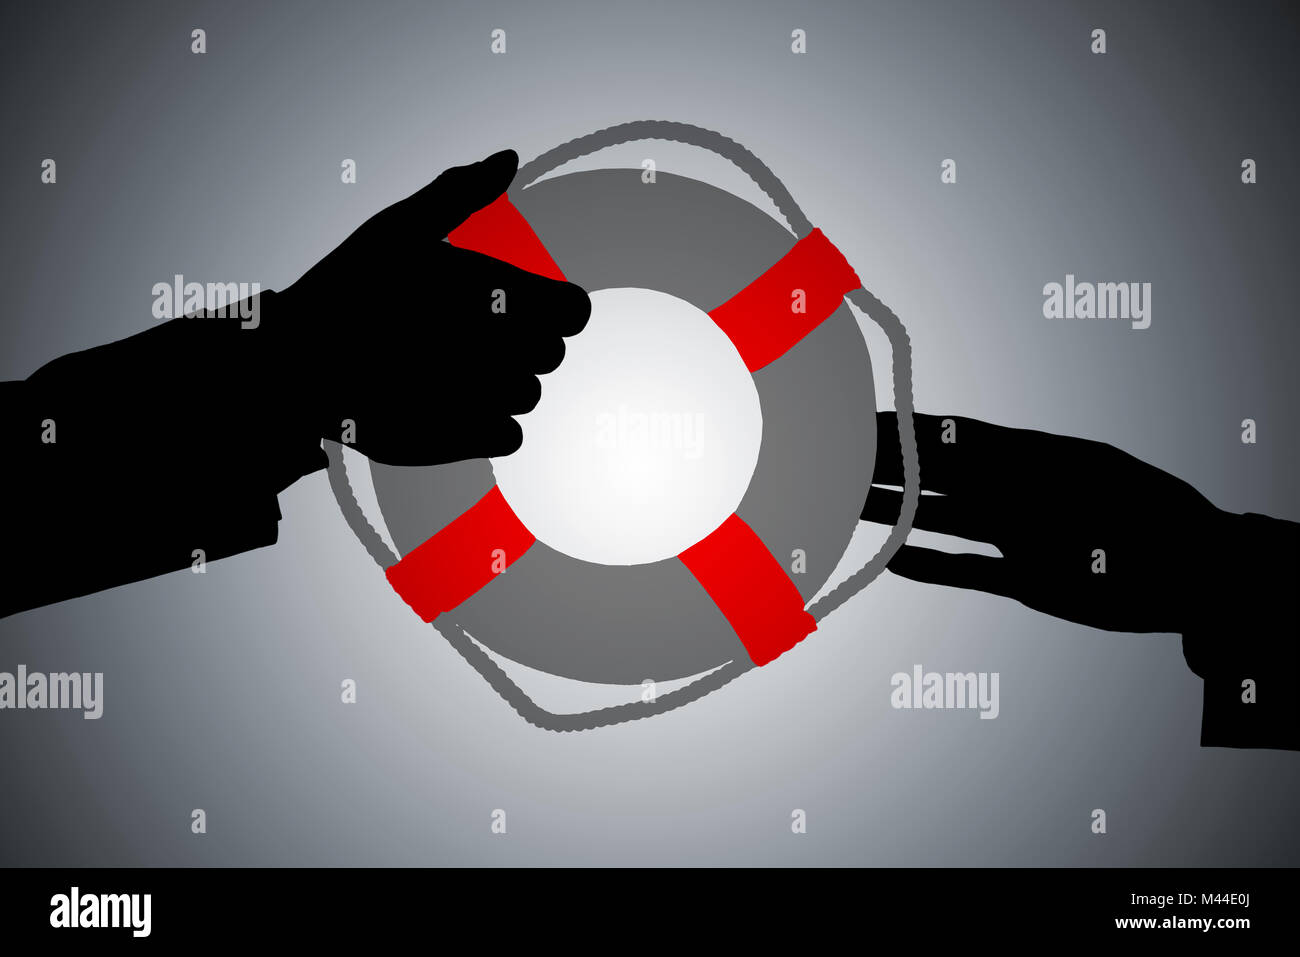 Silhouette Of A Two Person's Hand Passing Lifebuoy Against Gray Background - Stock Image